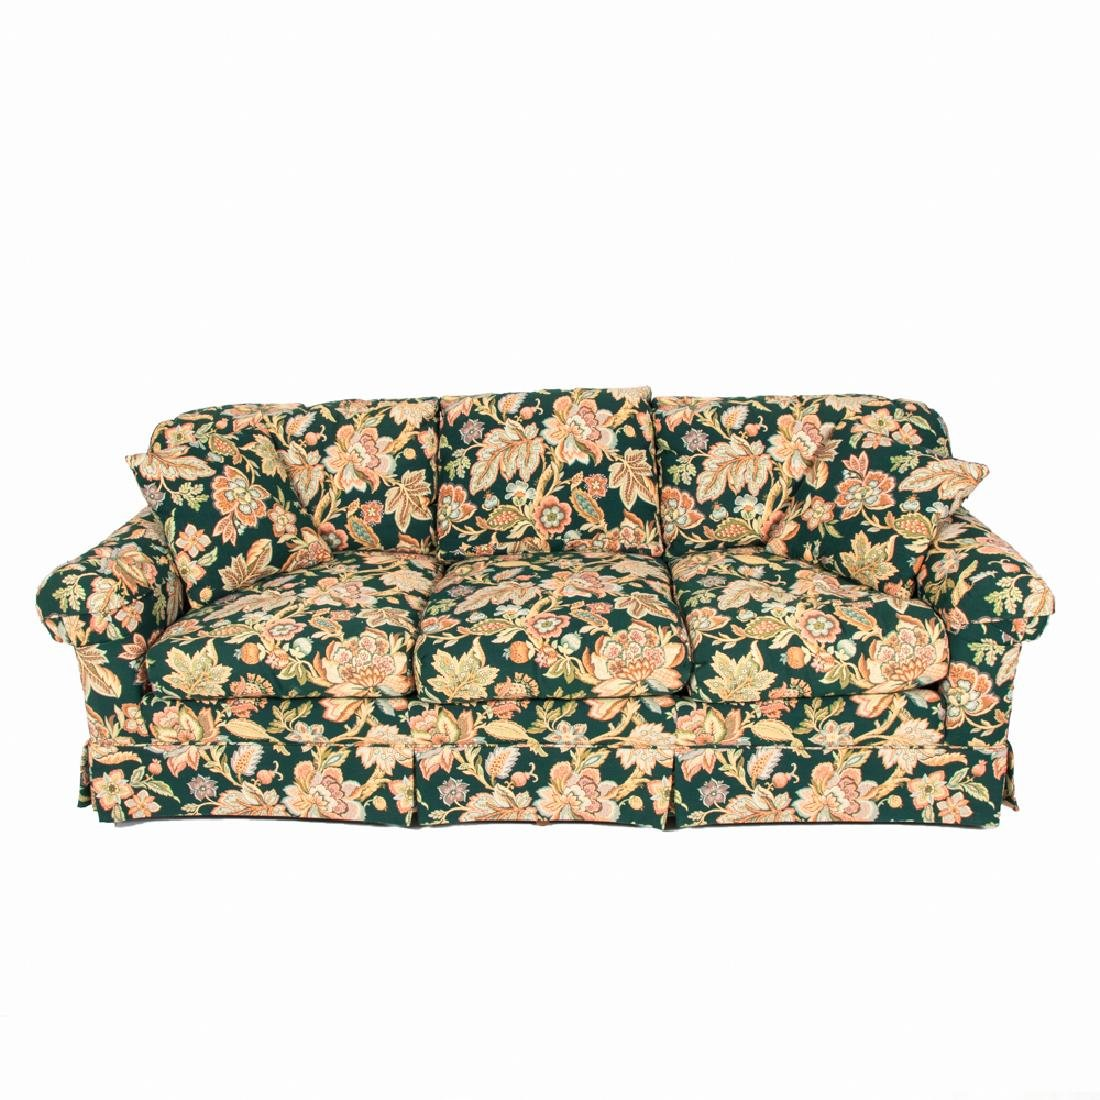 A Contemporary Floral Upholstered Sofa, 20th Century.